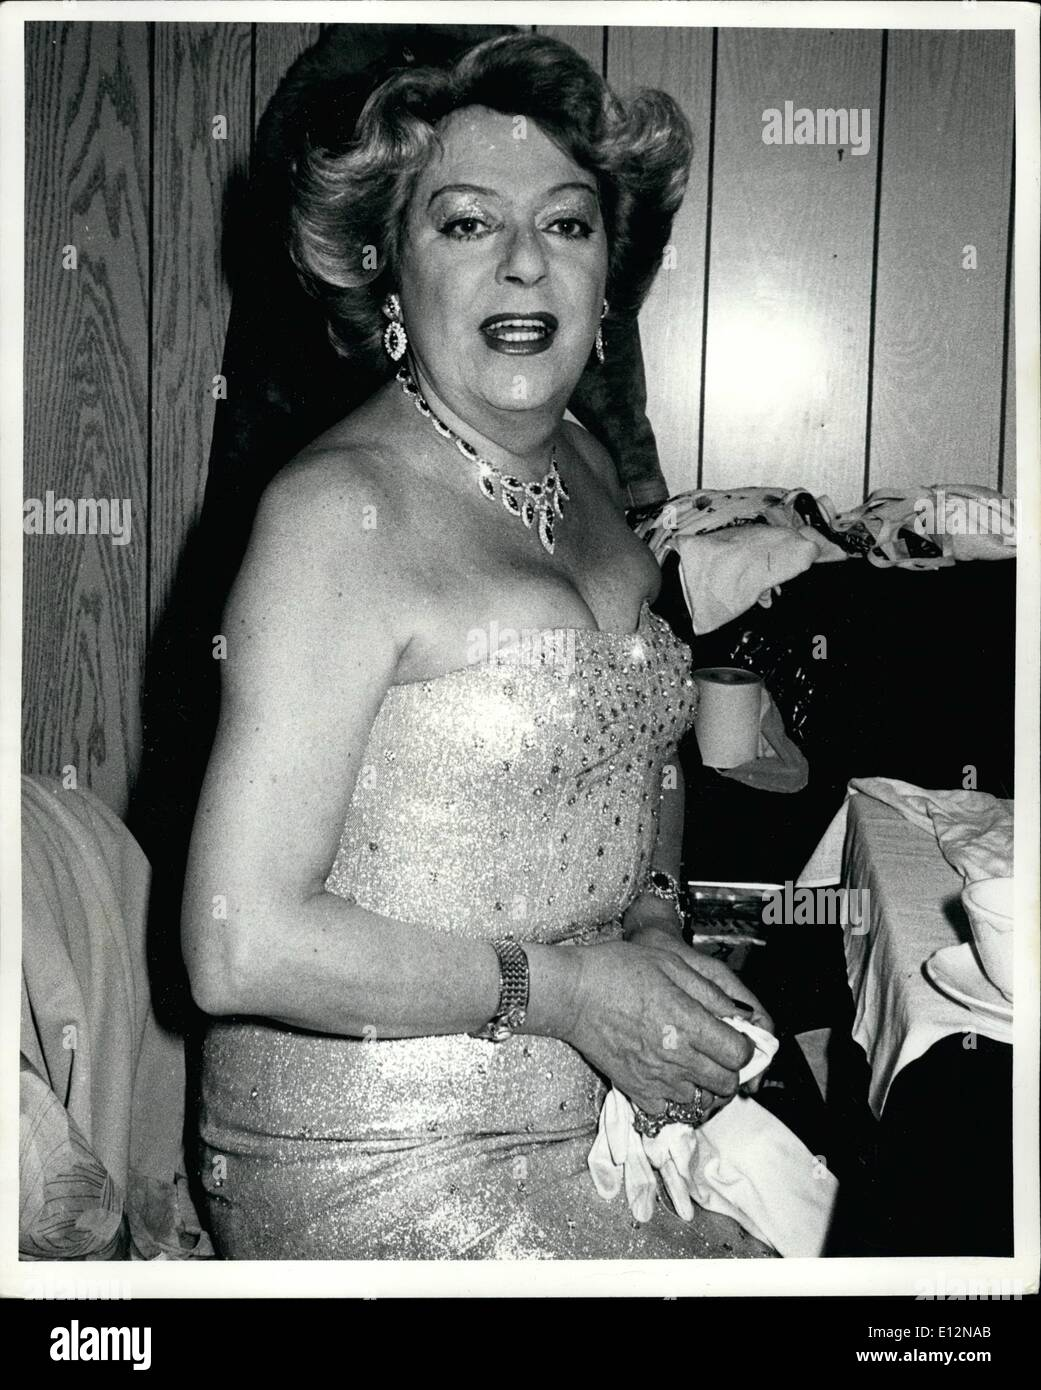 Feb. 24, 2012 - New York CIty--March 5, 1981--Backstage at ''Freddy's Cabaret'' on east 49st. Cristine Jorgensen prepares for her nightly club act. - Stock Image